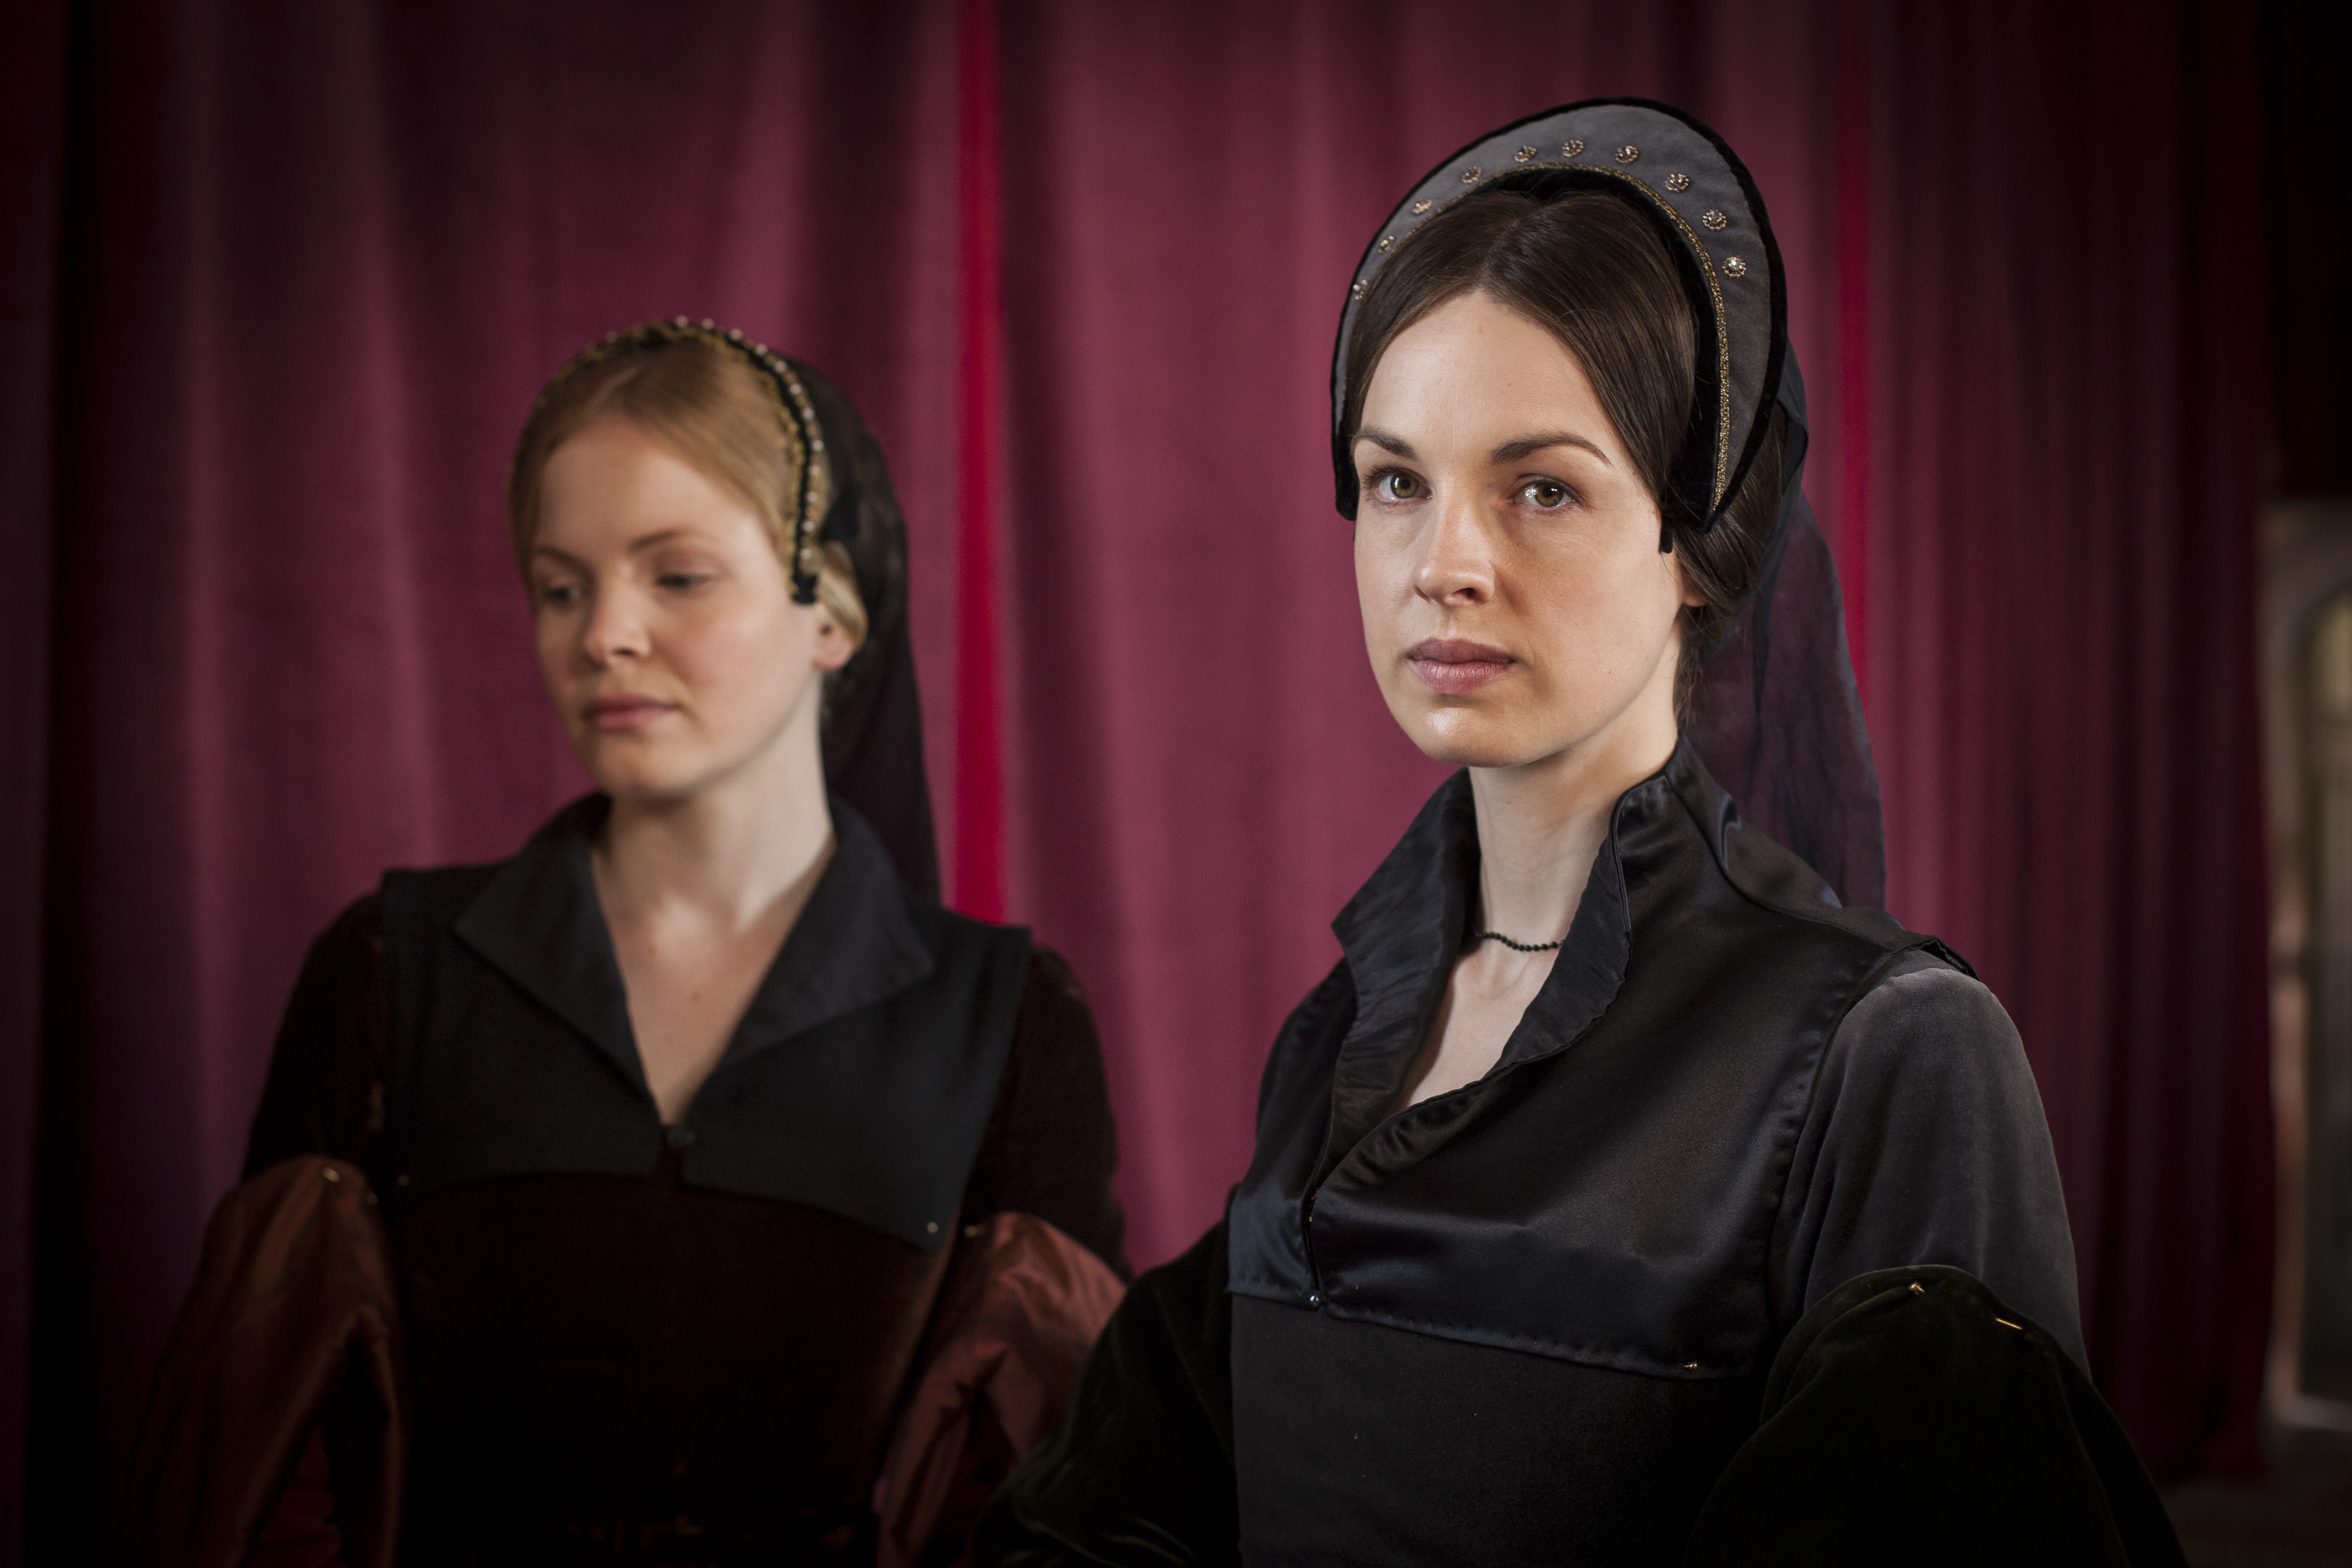 wolf_hall_the_two_janes.jpg